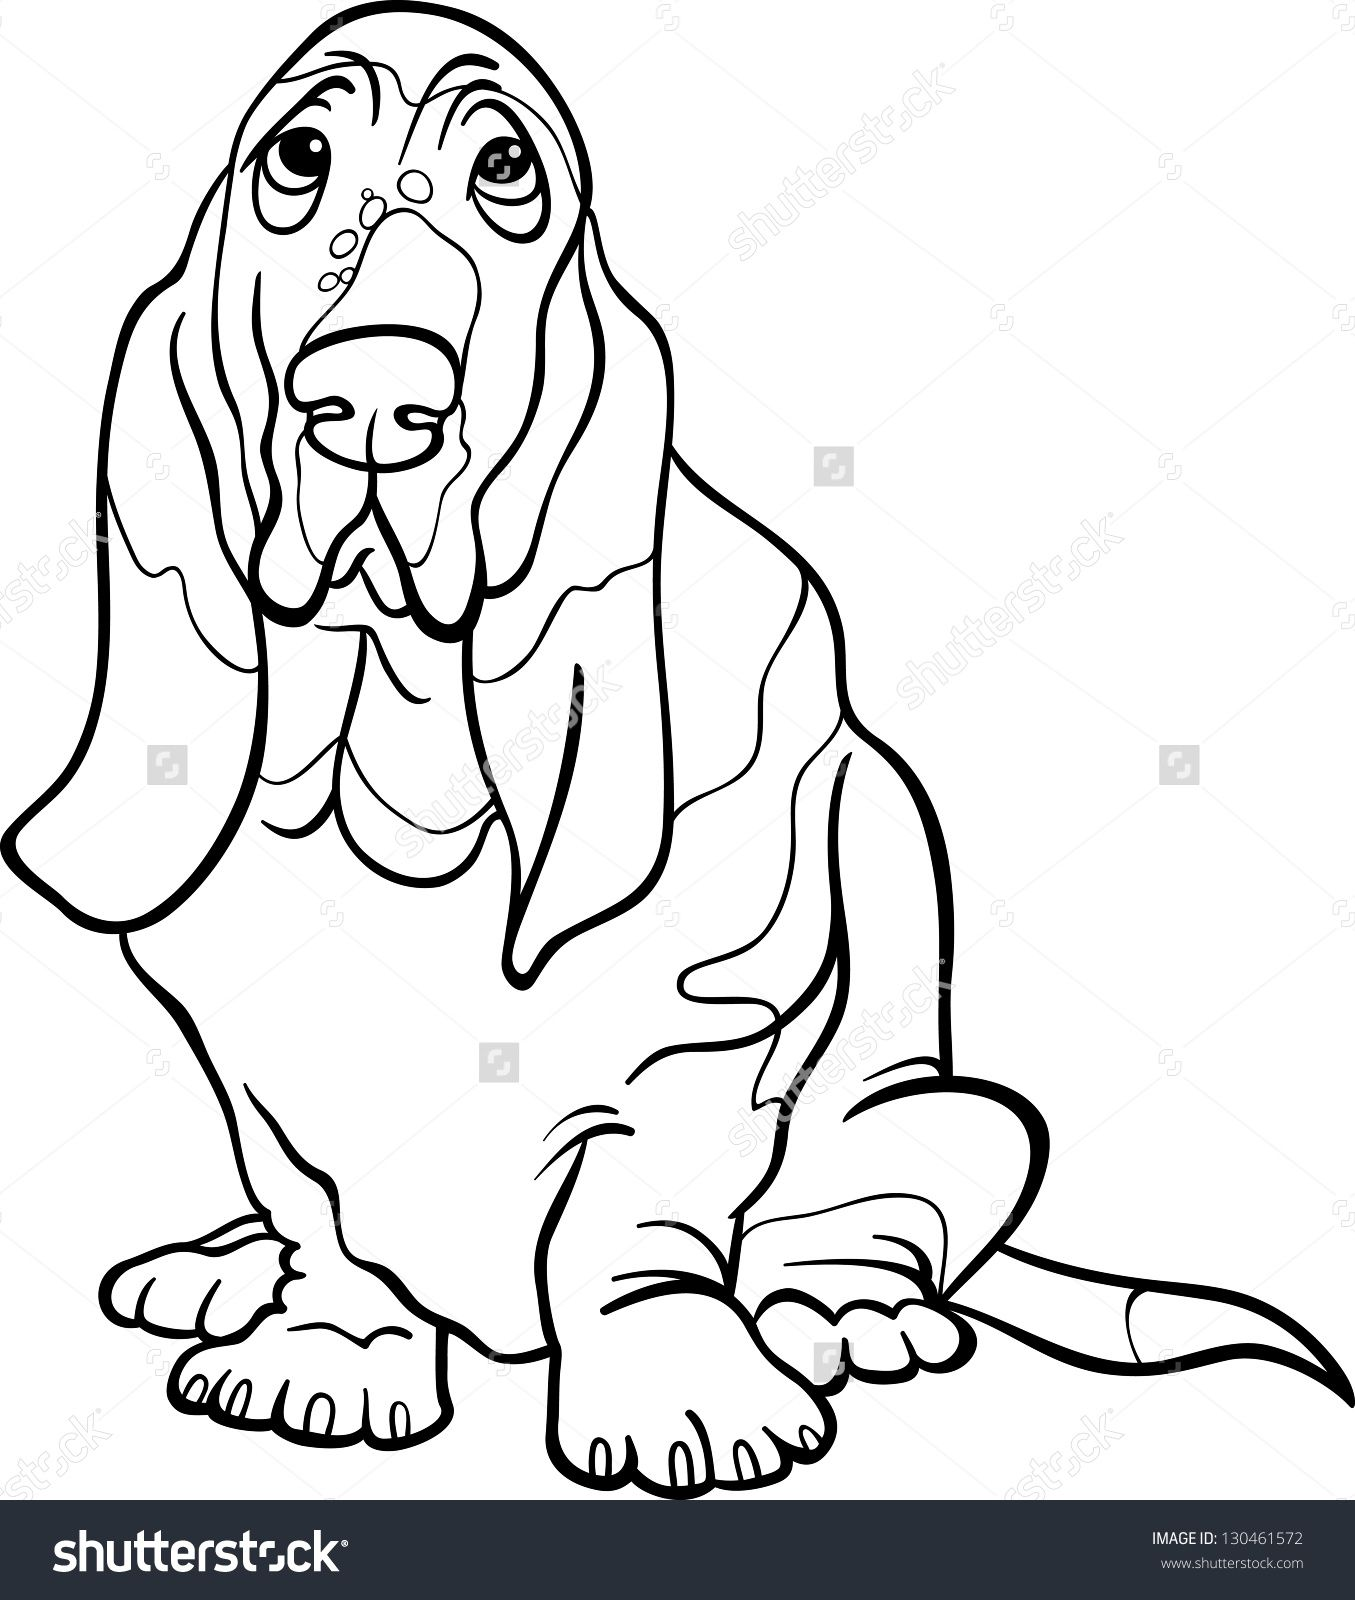 black and white cartoon vector illustration of cute basset hound